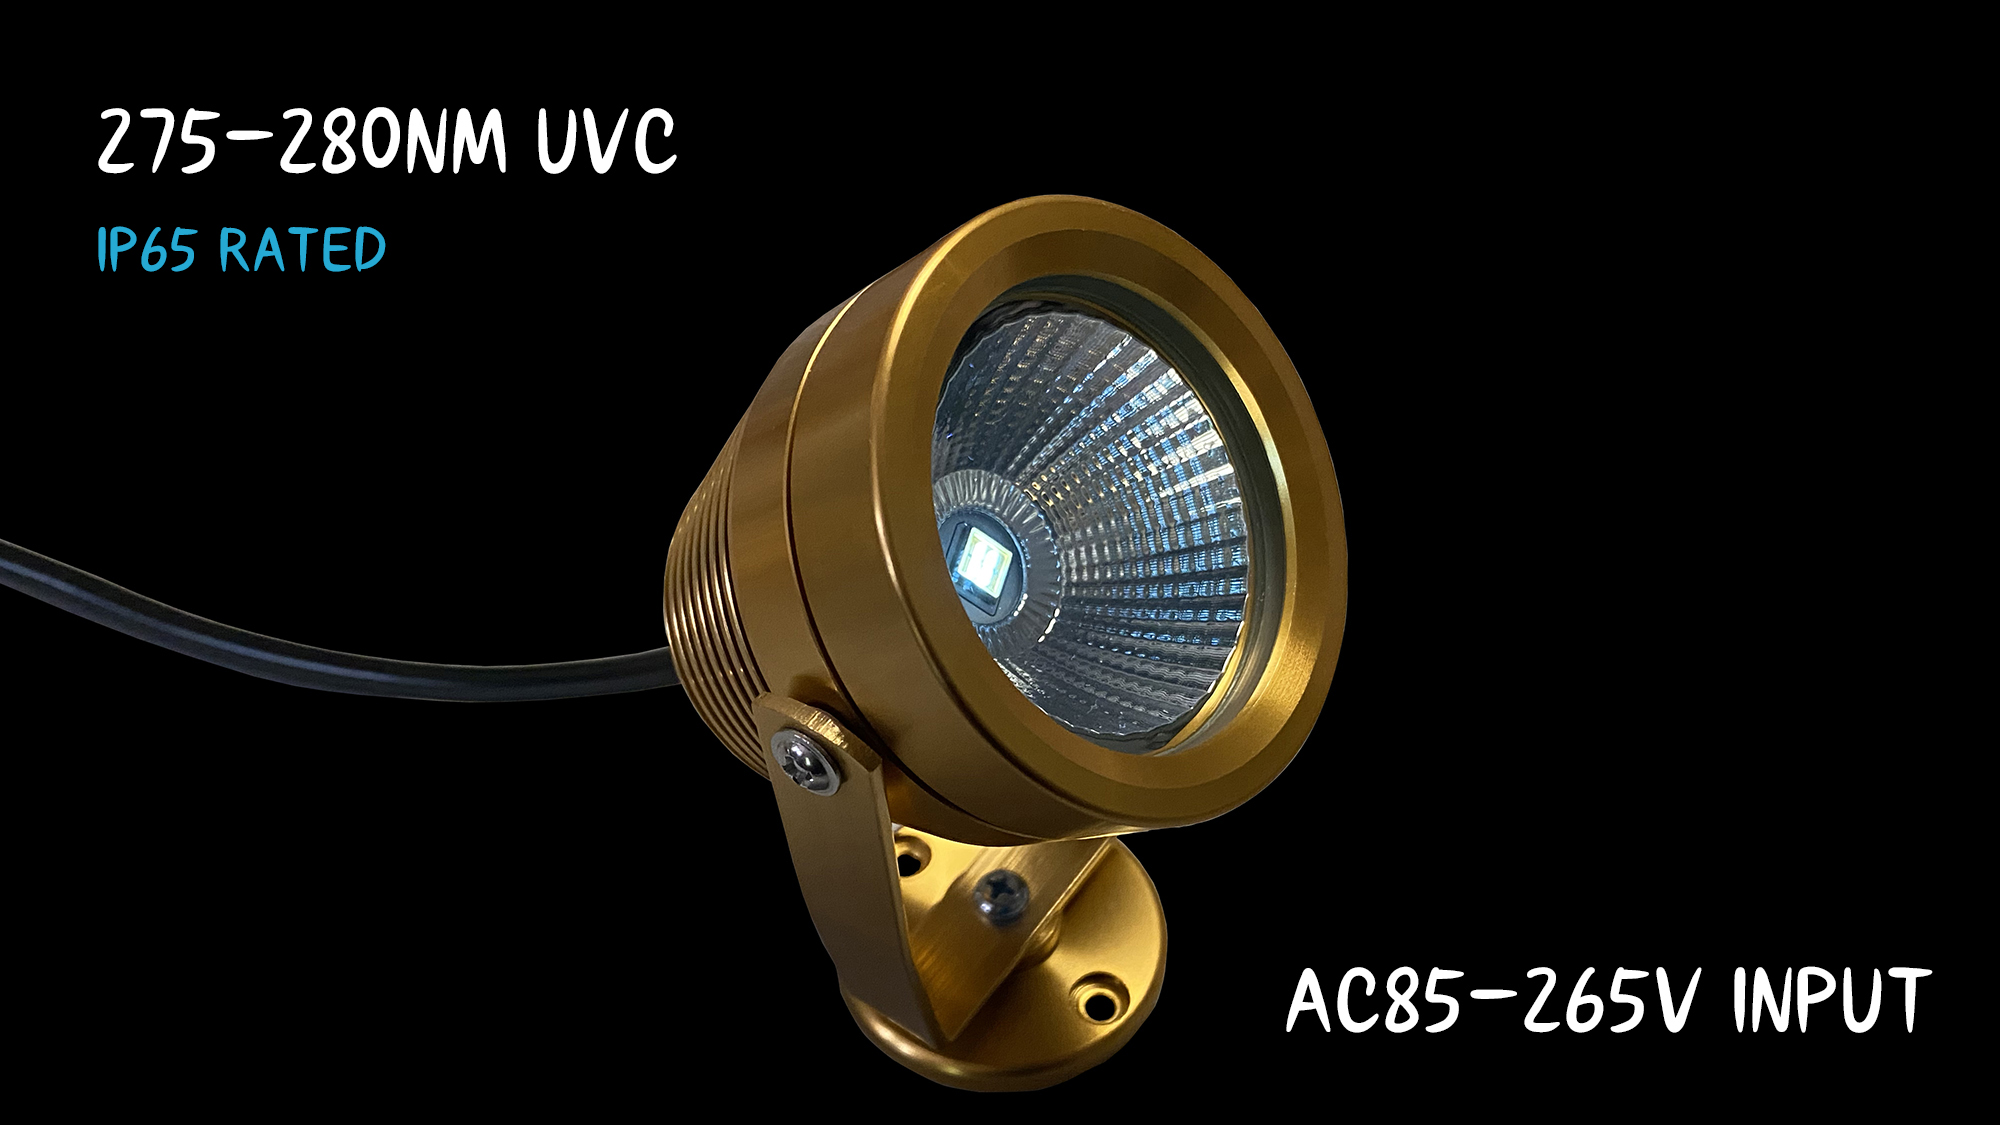 Meet Our Medical UVC Disinfection Lighting Stars!